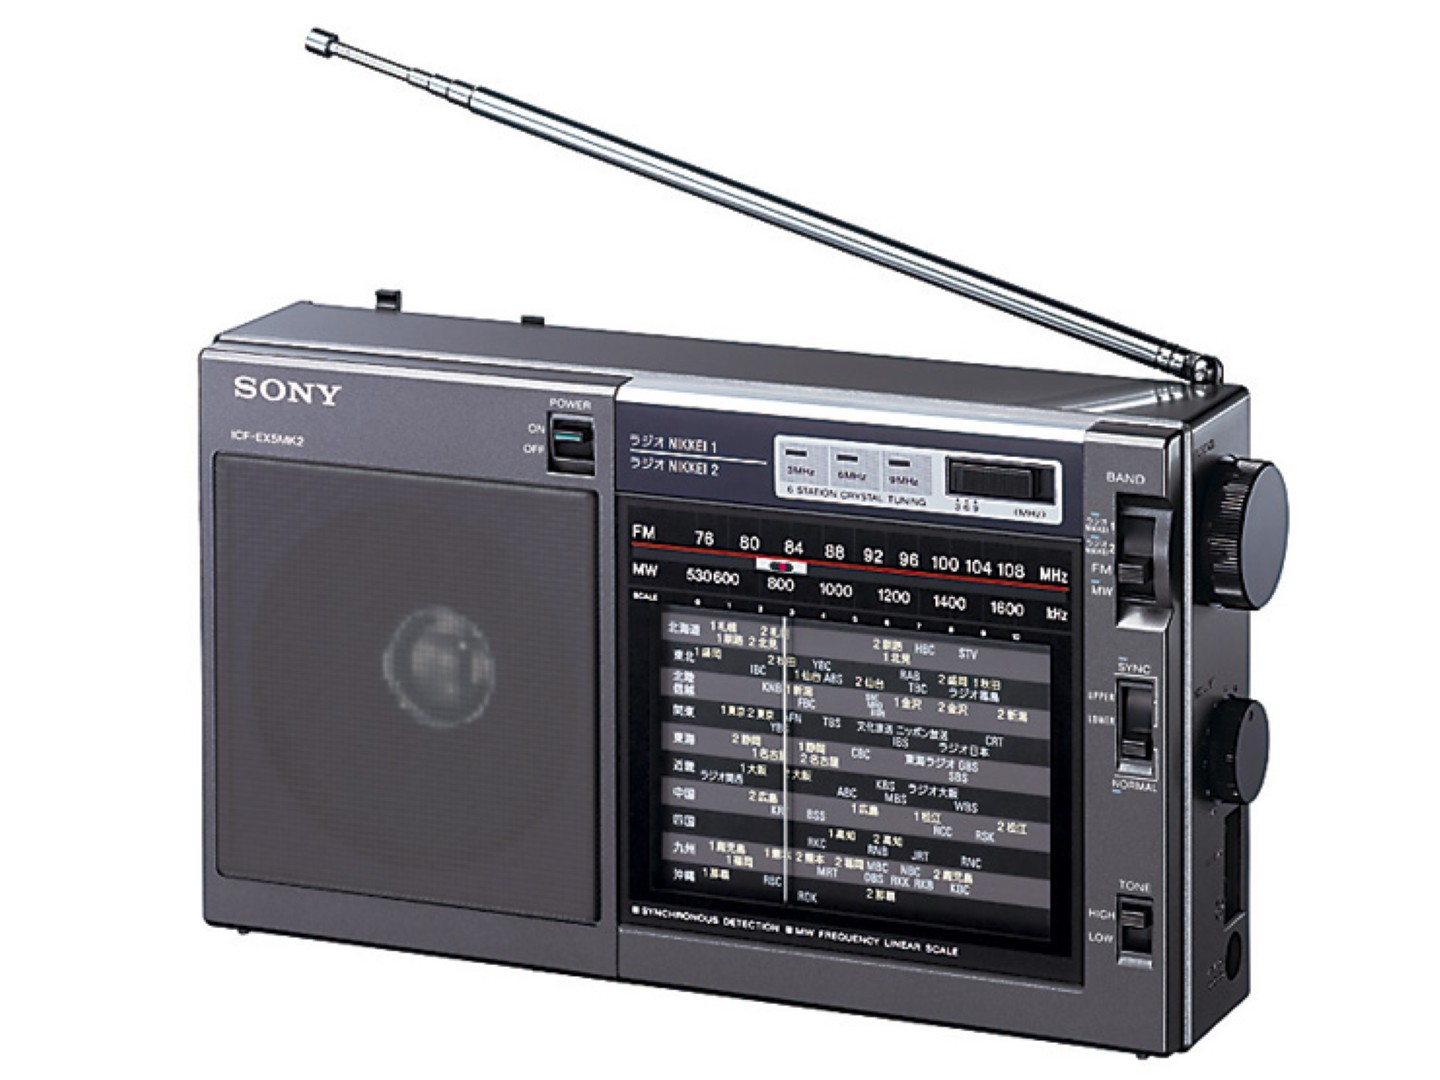 small portable radios am fm sony with Sony Icf Ex5mkii on Portable Radios With Best Reception additionally Scariest Dolls In Horror further Sony zss3ipblackn ipod dock boombox furthermore Sony SRFM37W SRF M37W Walkman Digital Tuning also Am Fm Sports Radio.